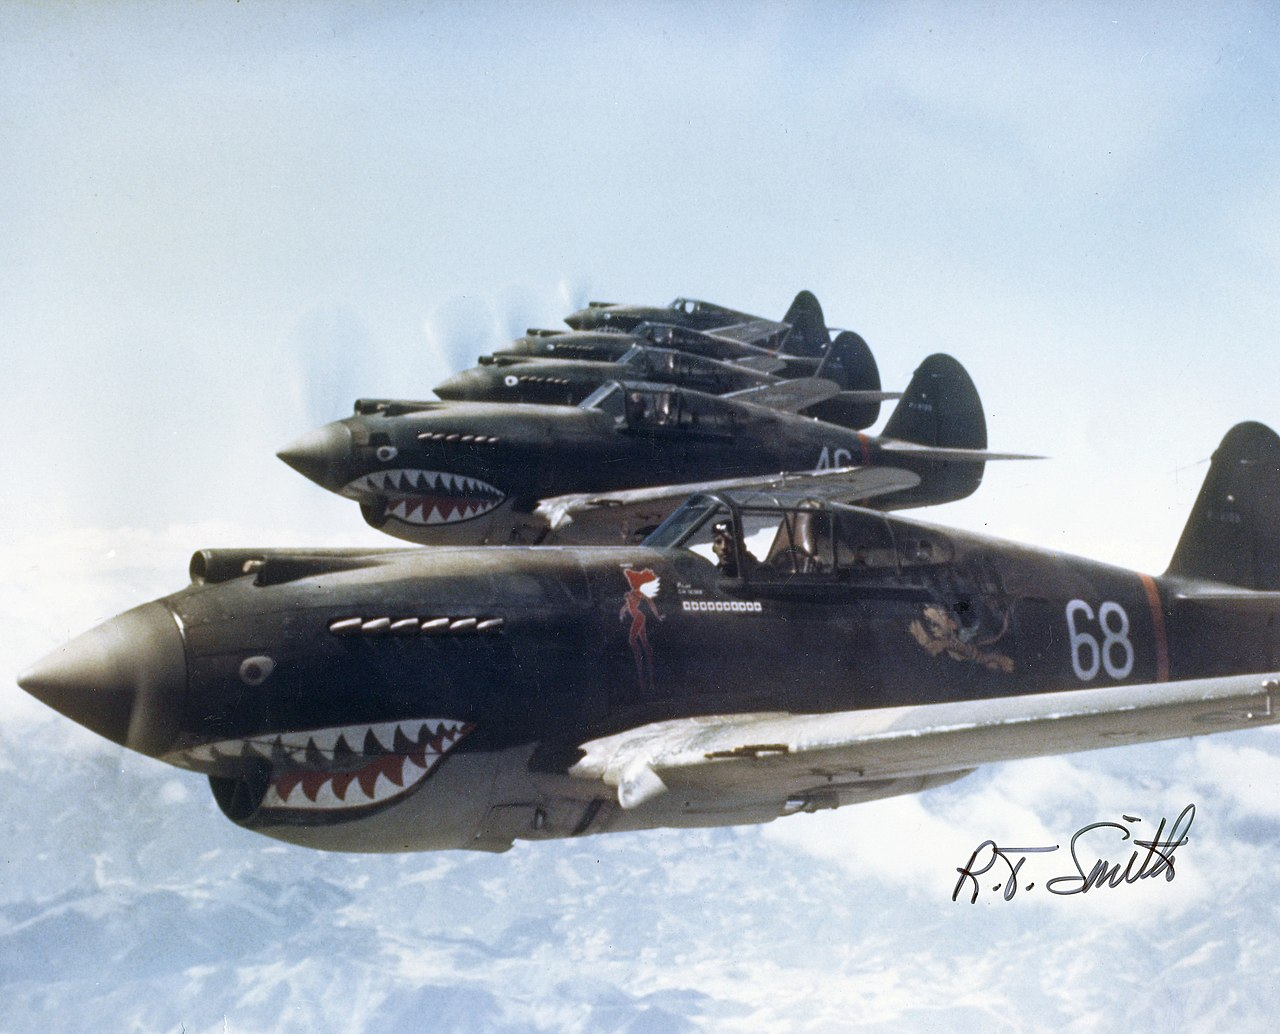 3rd Squadron Hell's Angels, Flying Tigers over China, photographed in 1942